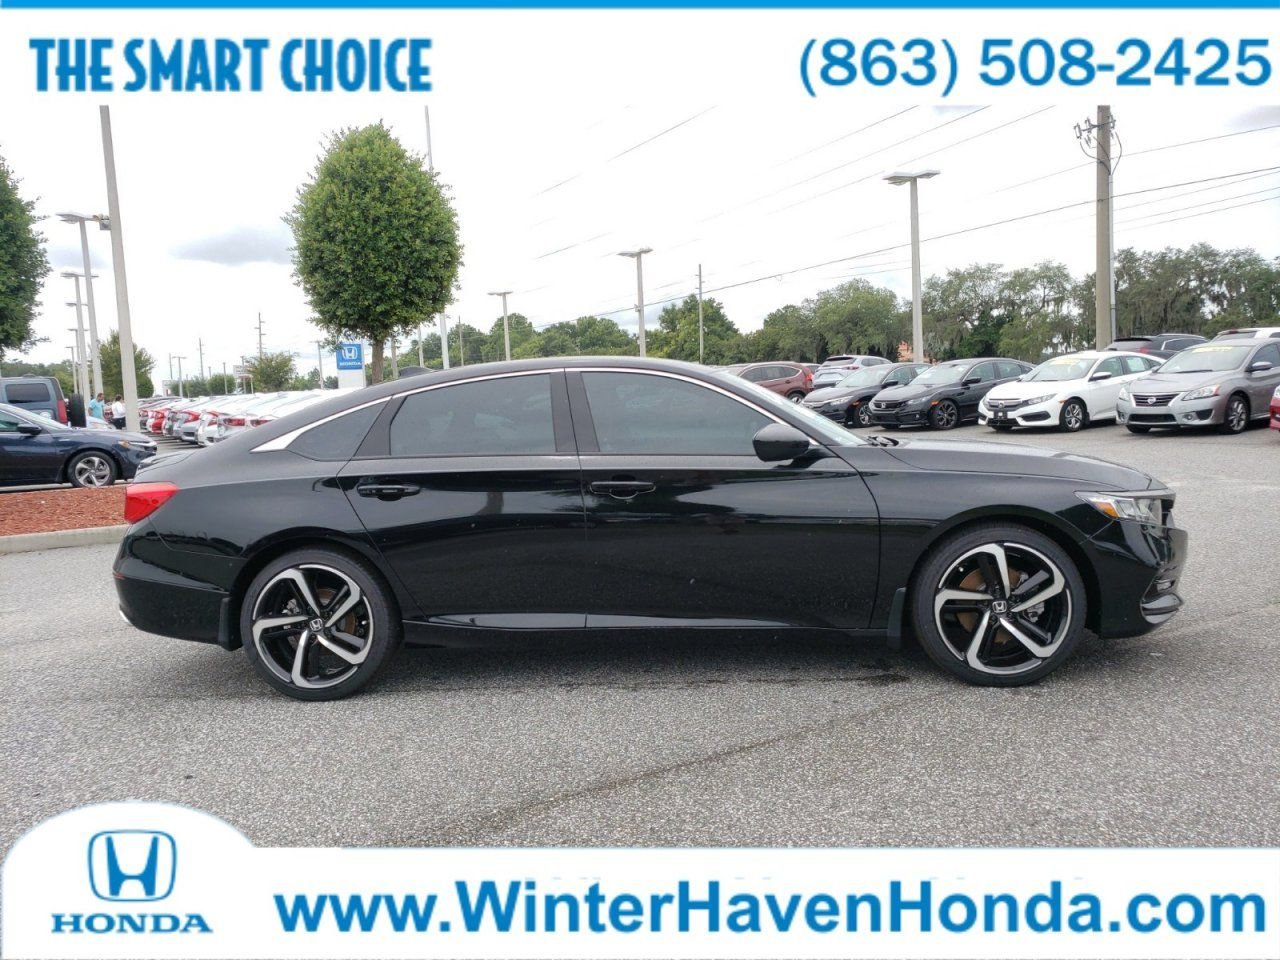 2019 Honda Accord Sedan Sport 1.5T 1HGCV1F35KA103483